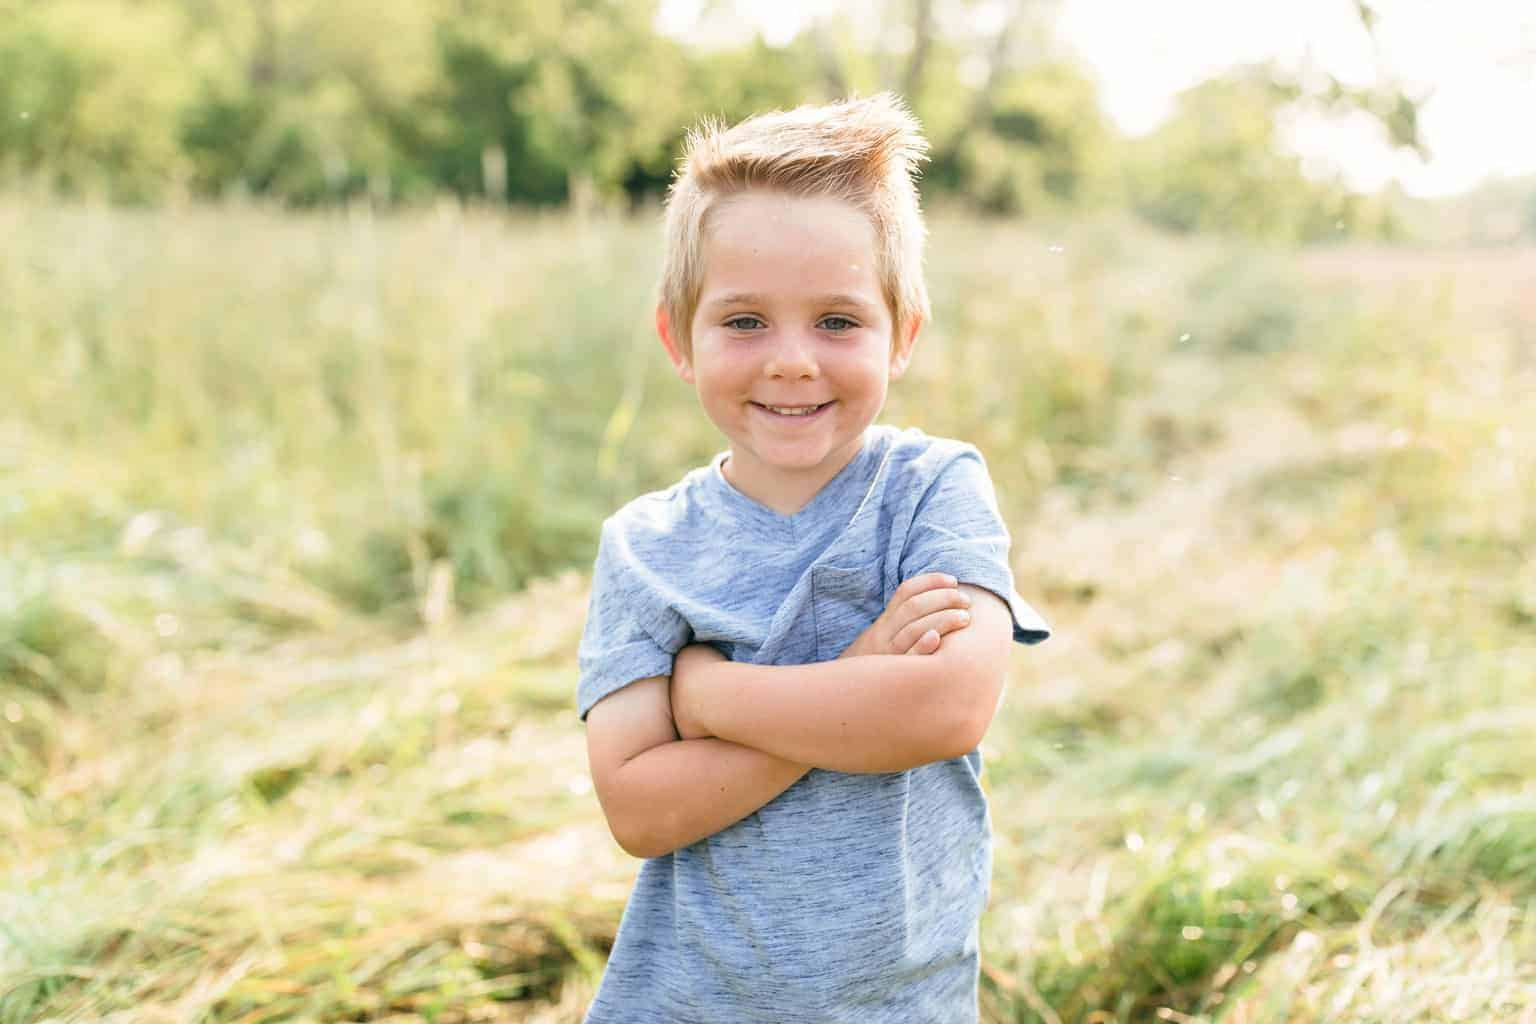 picture of little boy in blue shirt in a open field